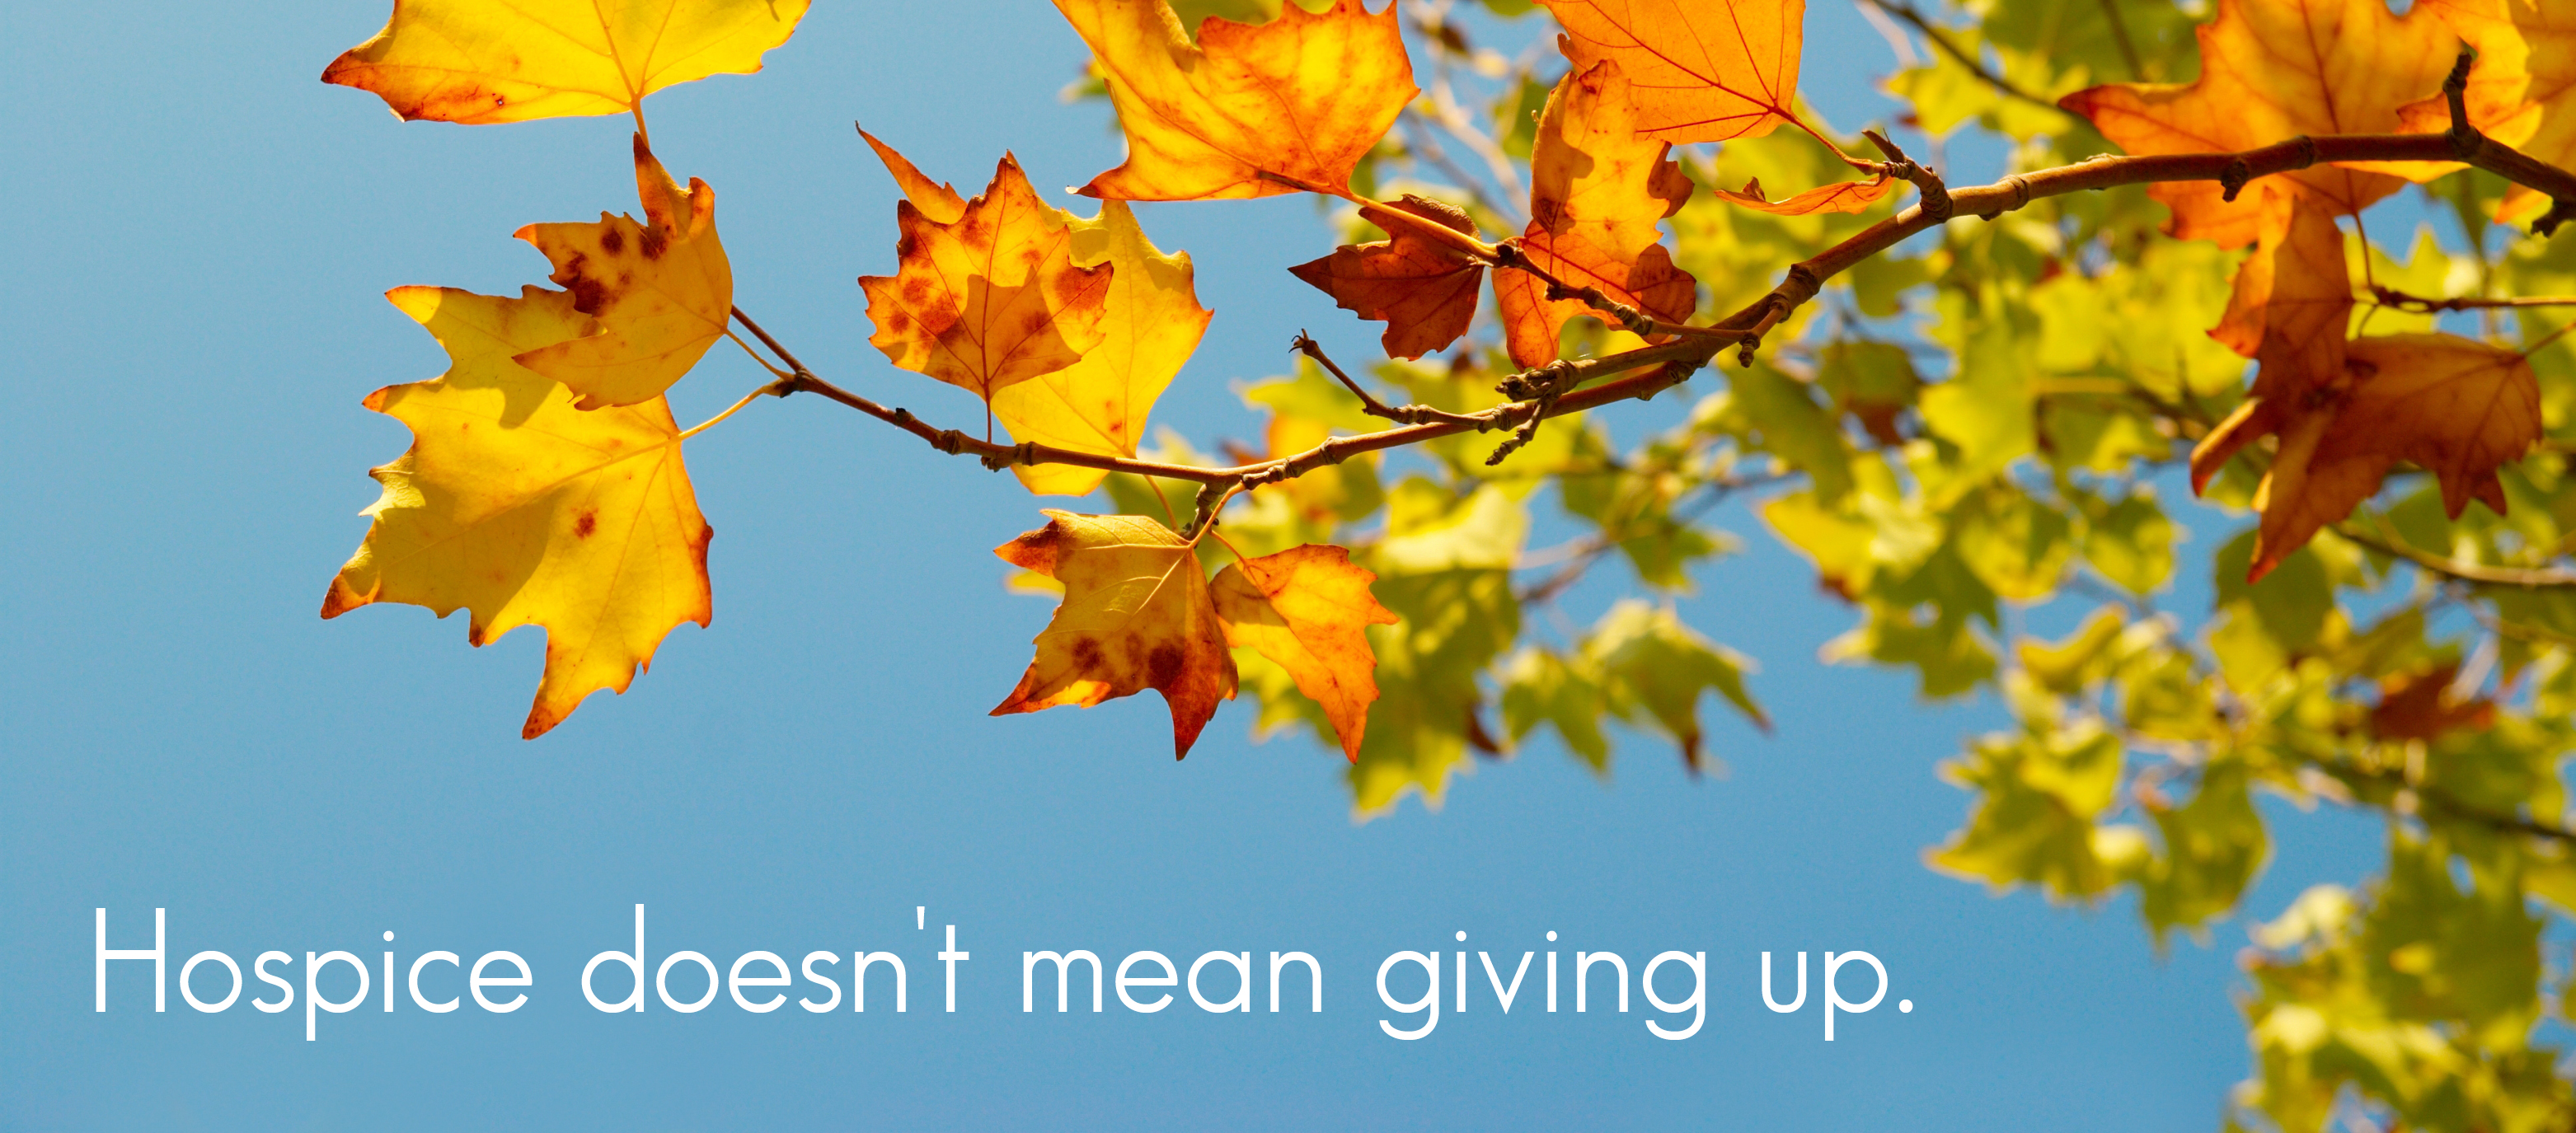 Hospice doesn't mean giving up